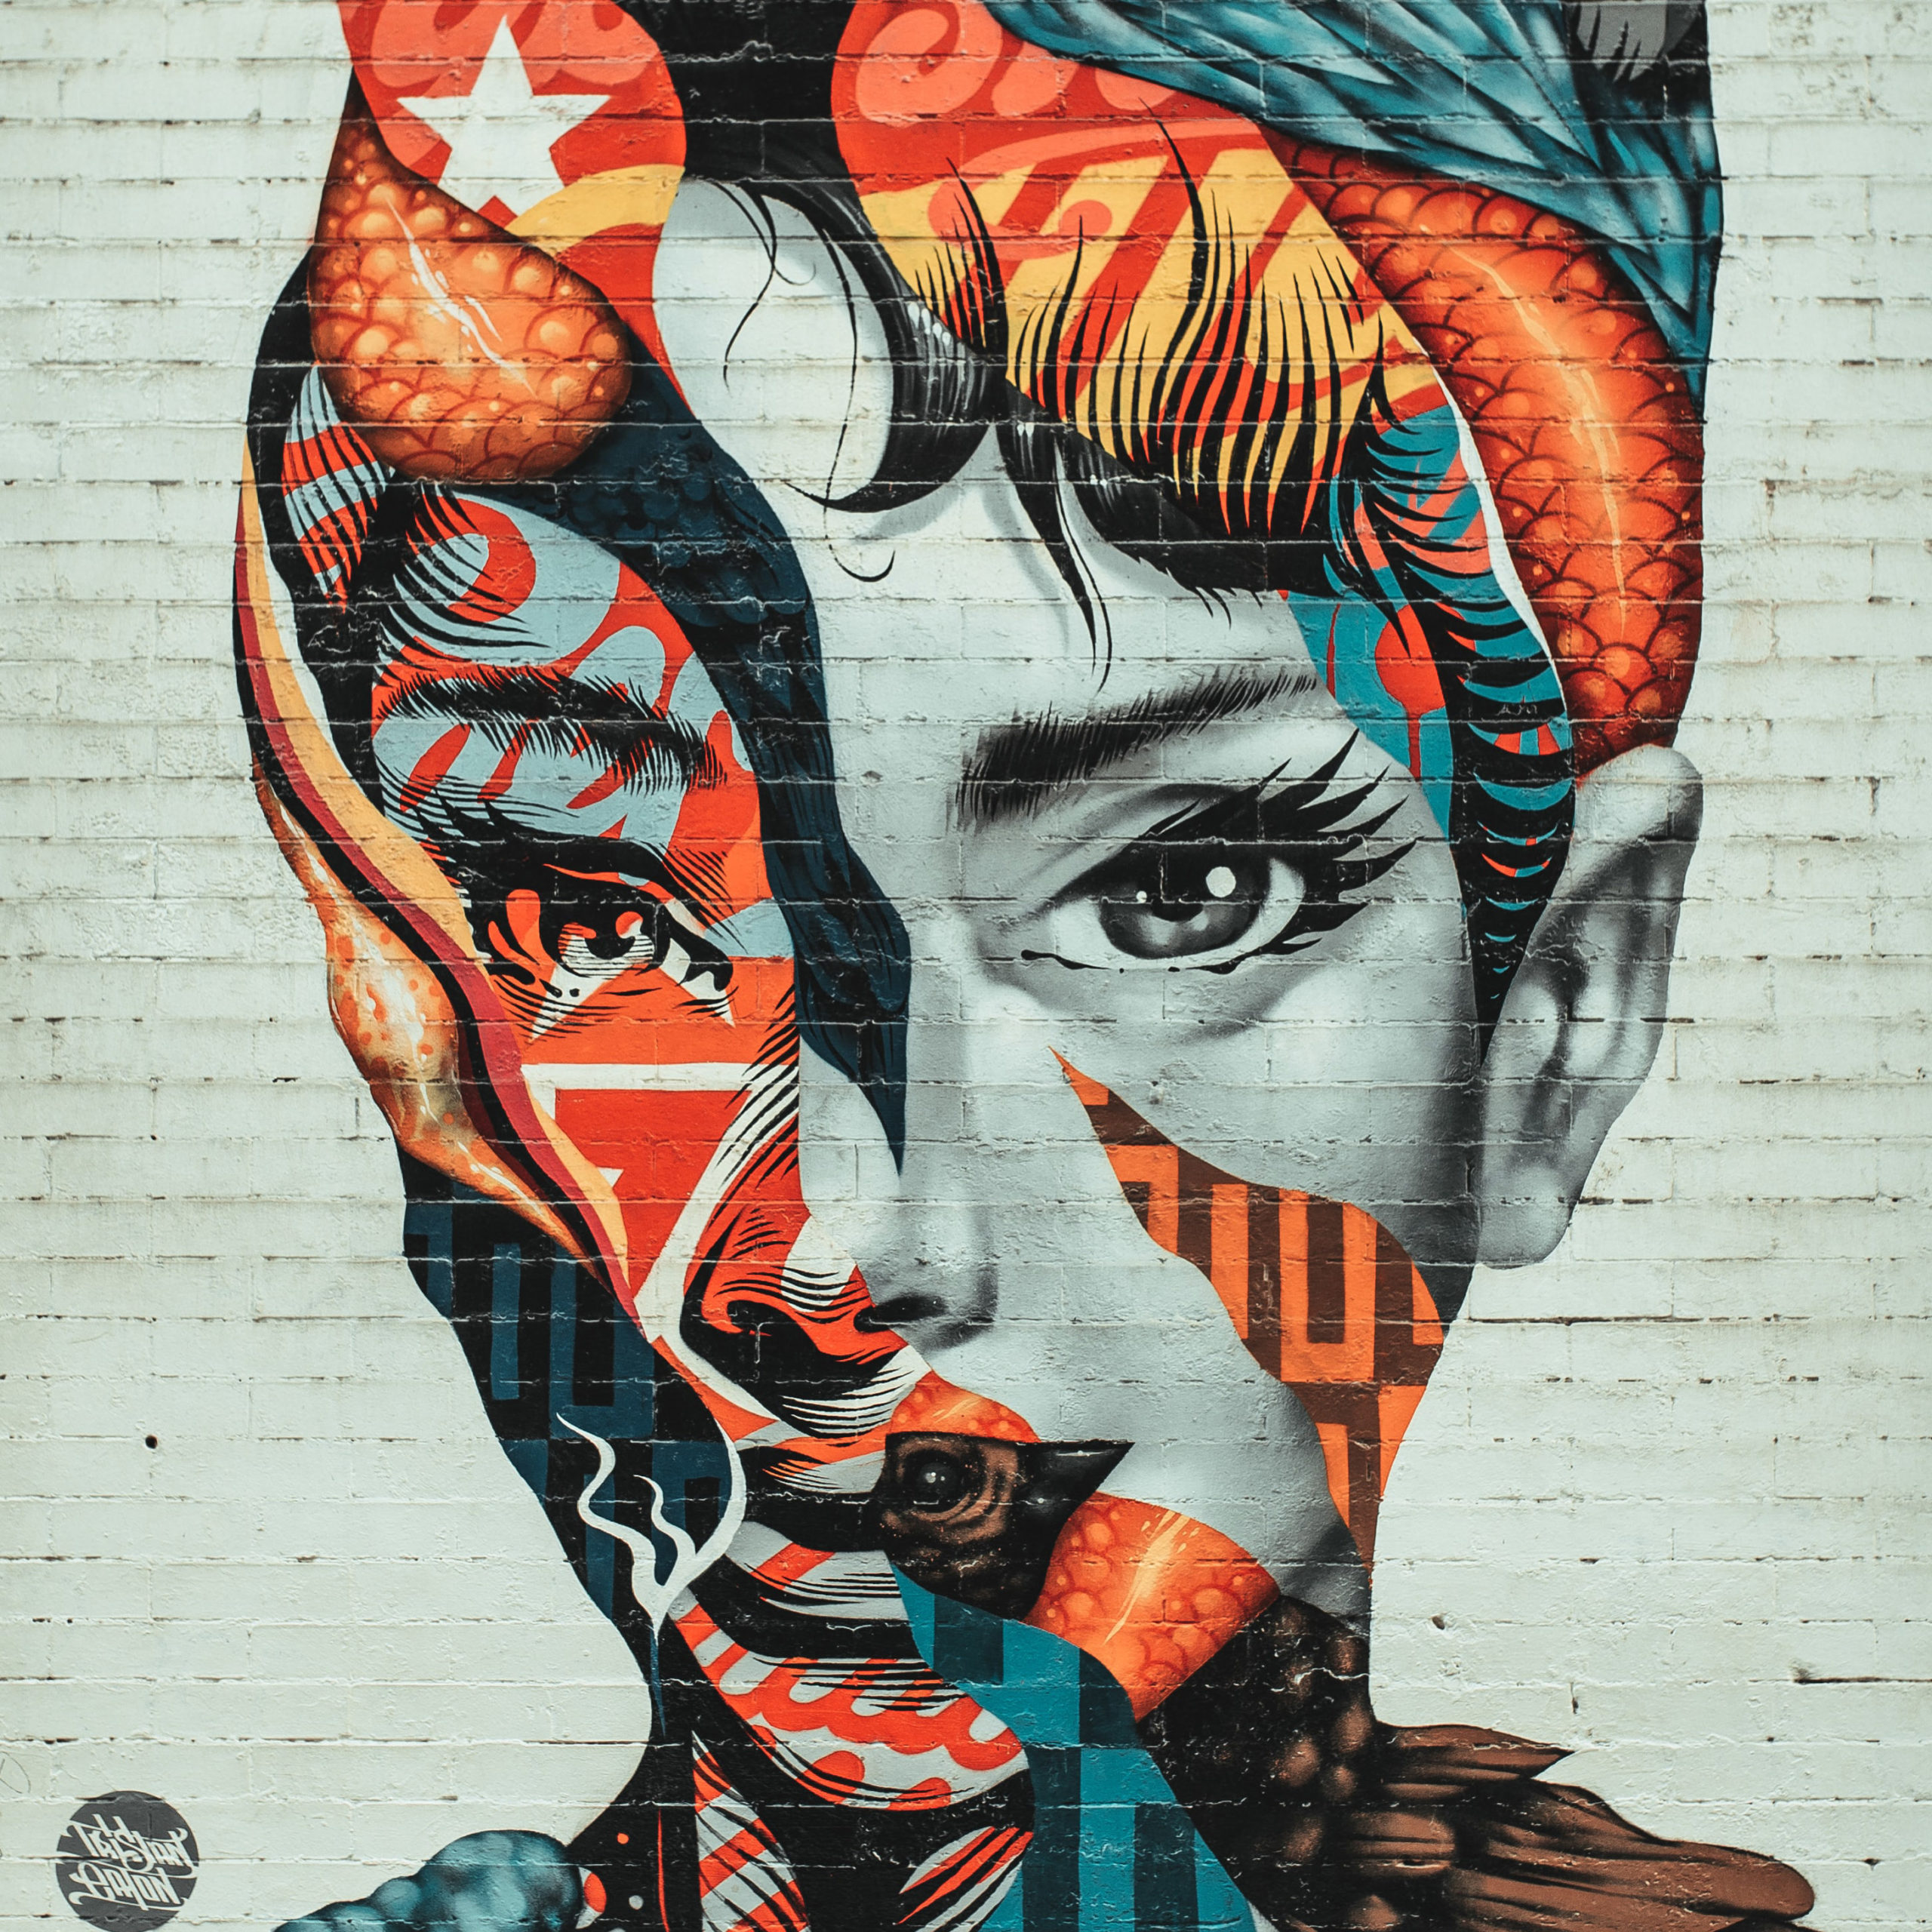 Mural of A Beautiful Ethnic Woman